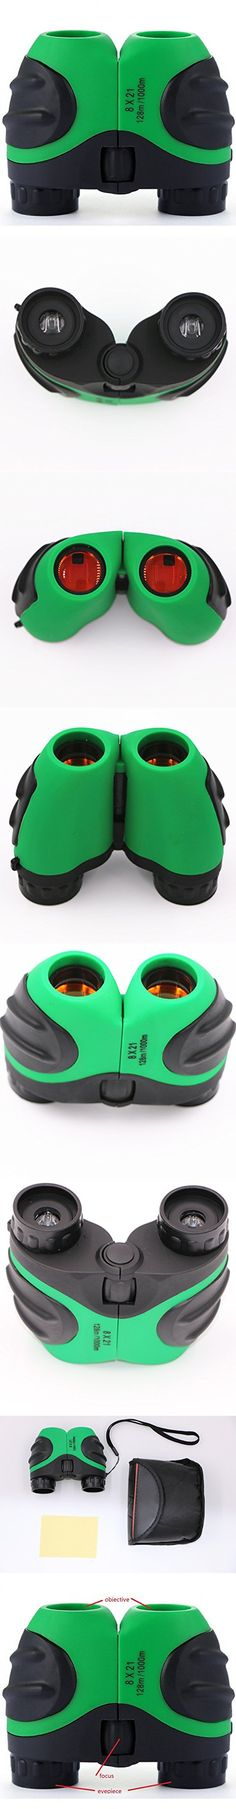 Fvstar Kids Binoculars Pocket Size Compact 8 X 21 for Bird Watching, Watching Wildlife or Scenery,Lightweight,Waterproof and Fogproof for Xmas New Year Gifts (Green)